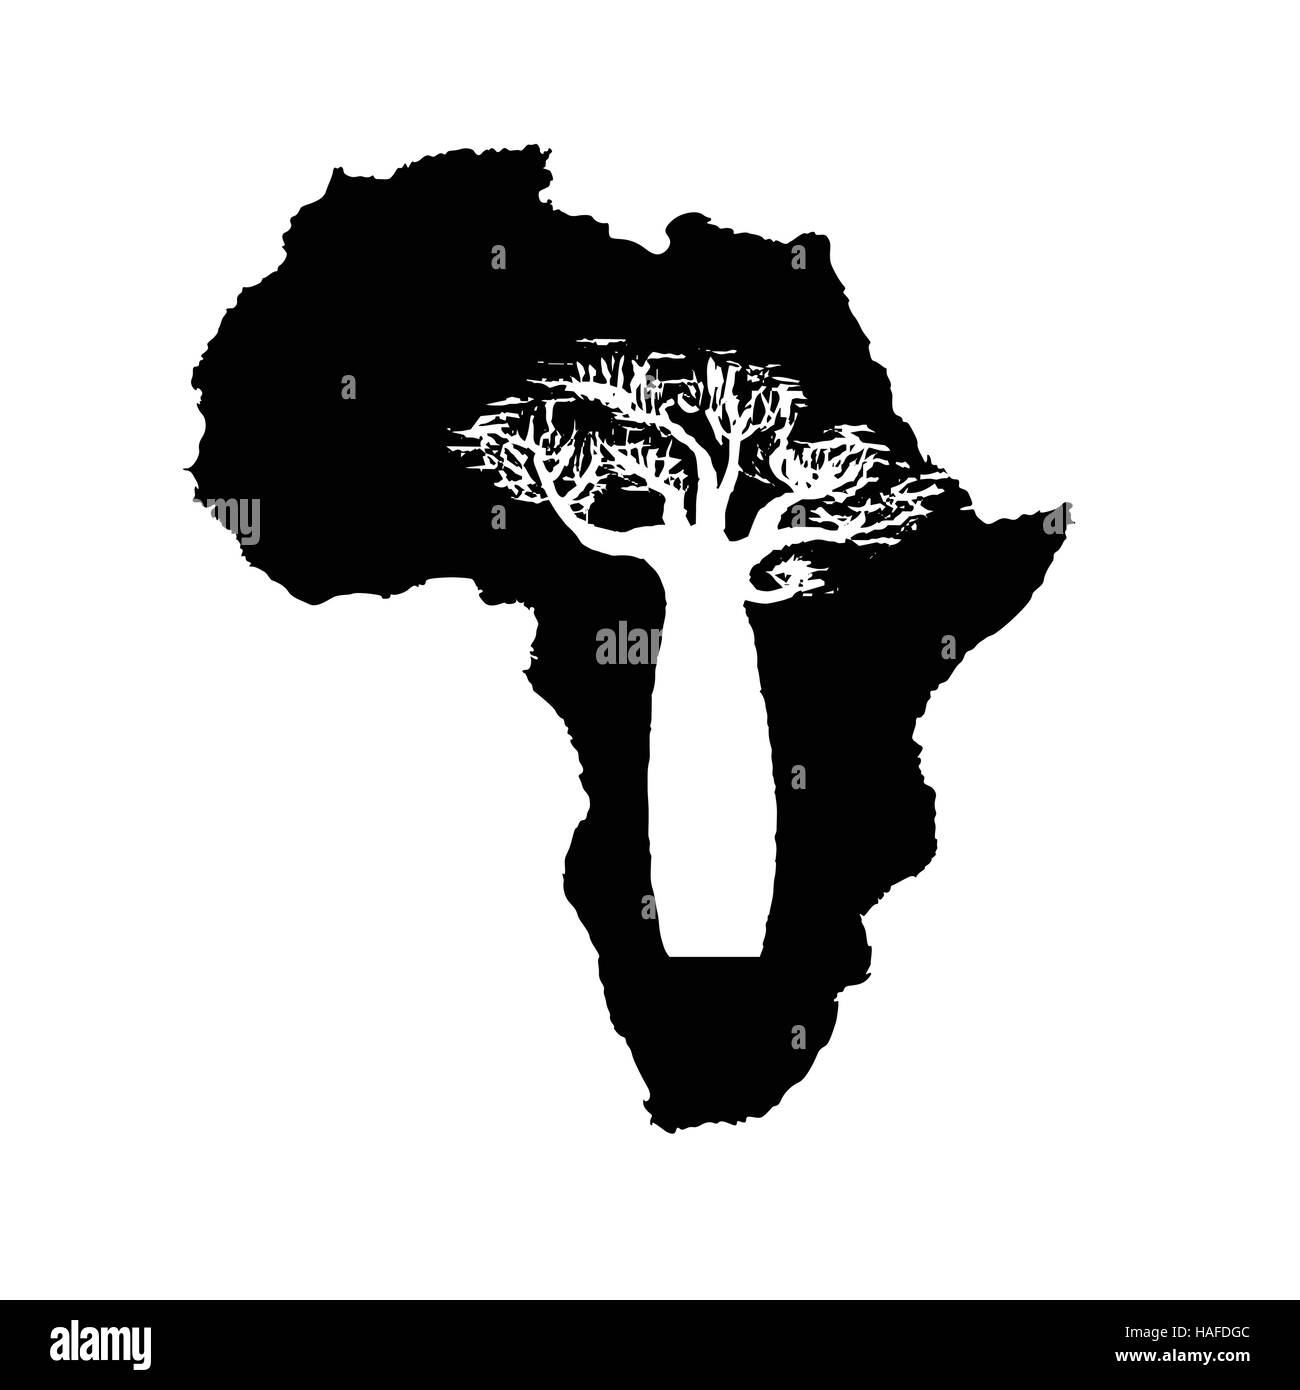 vector silhouette of black africa with white baobab silhouette inside